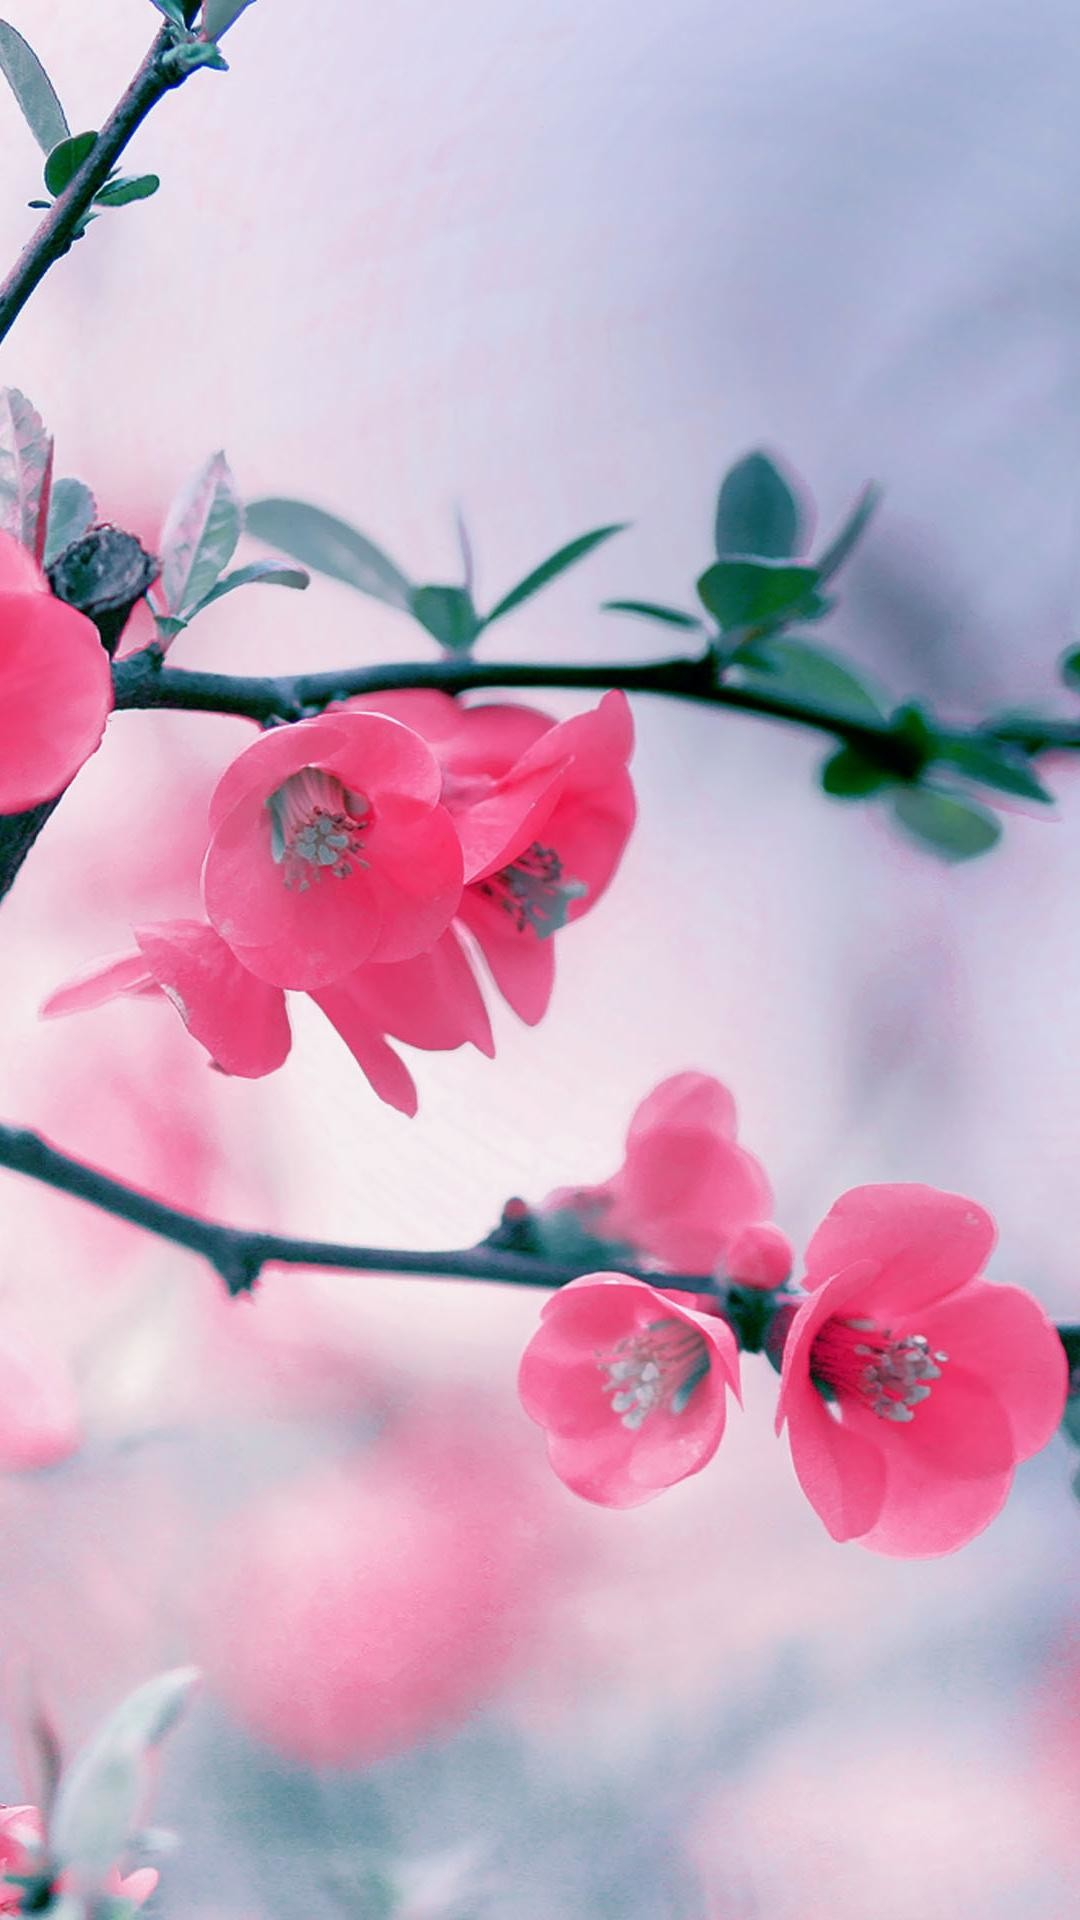 wallpaper.wiki-Pink-Cherry-Blossom-iPhone-Widescreen-Background-